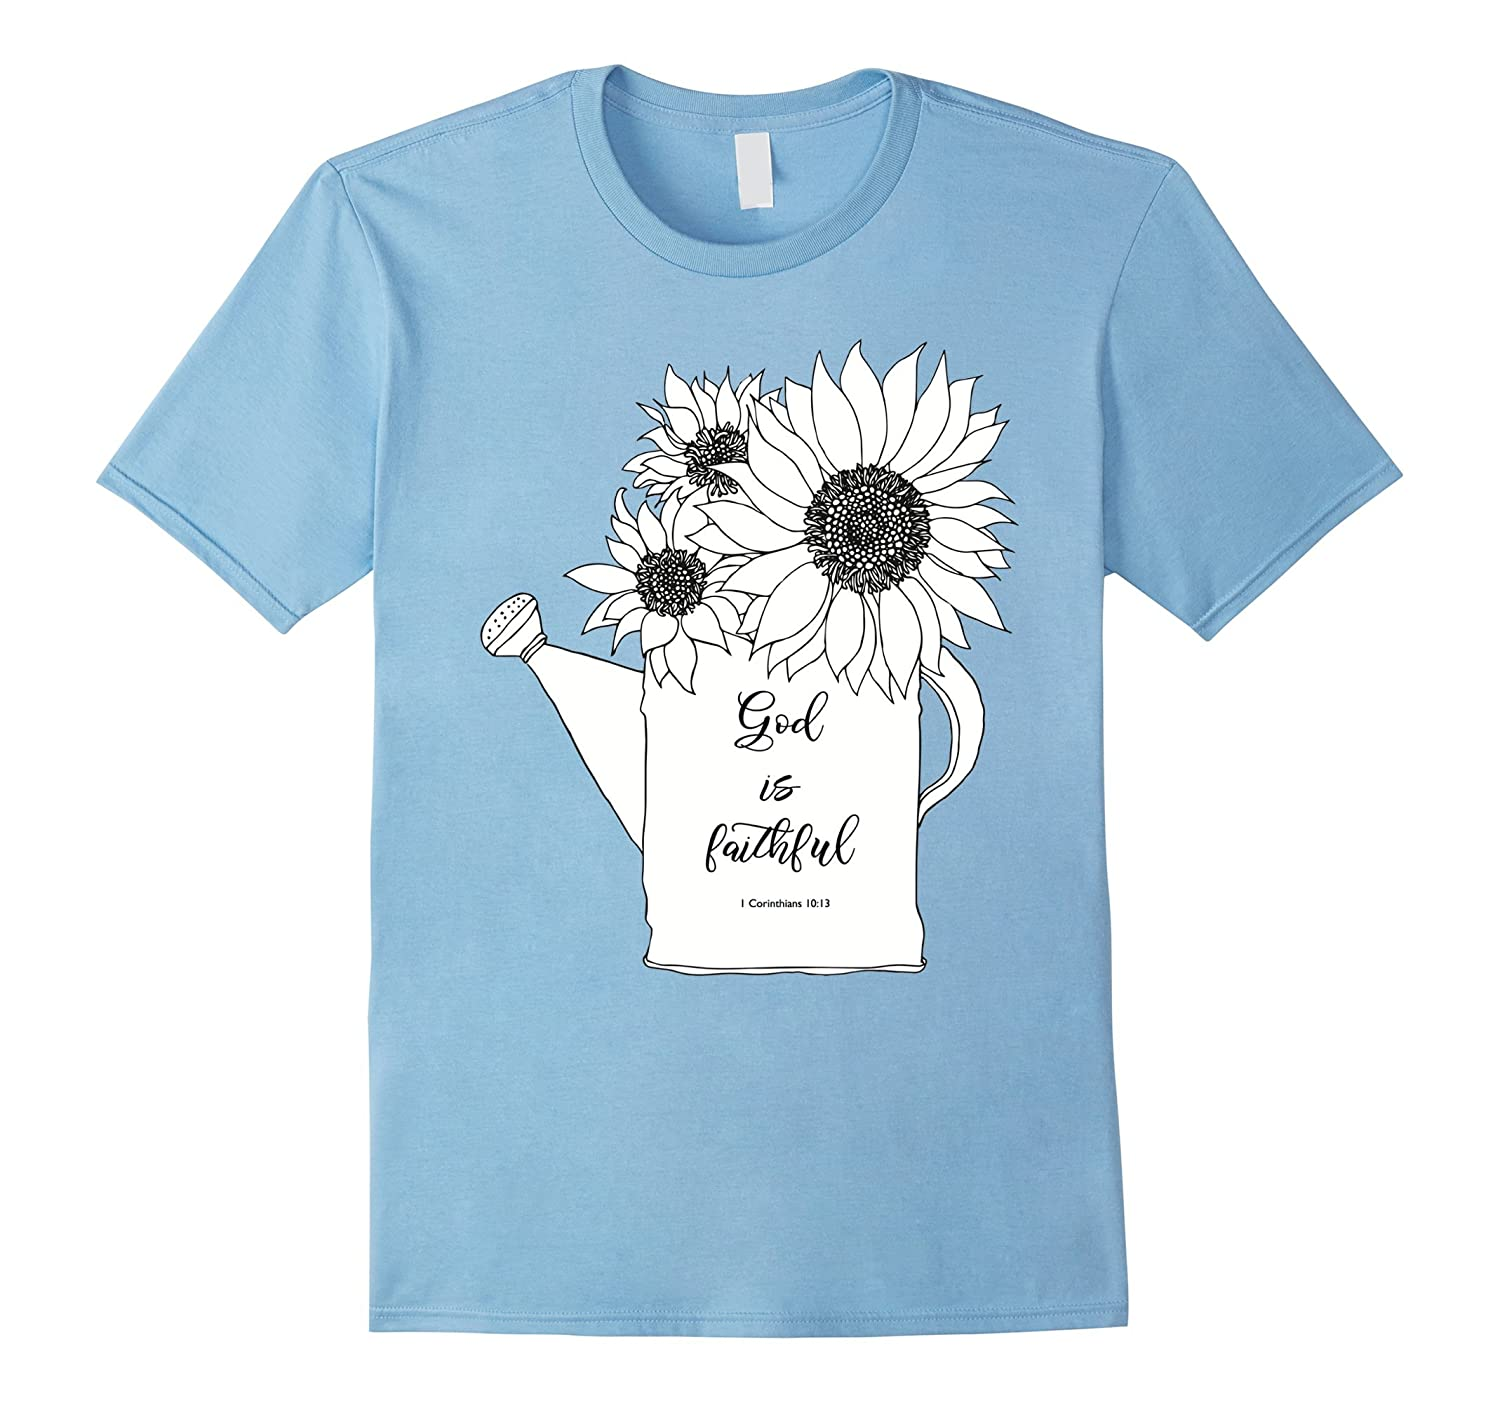 Colorable T-shirt for Adult Coloring Fan Mothers Day Gift-TD